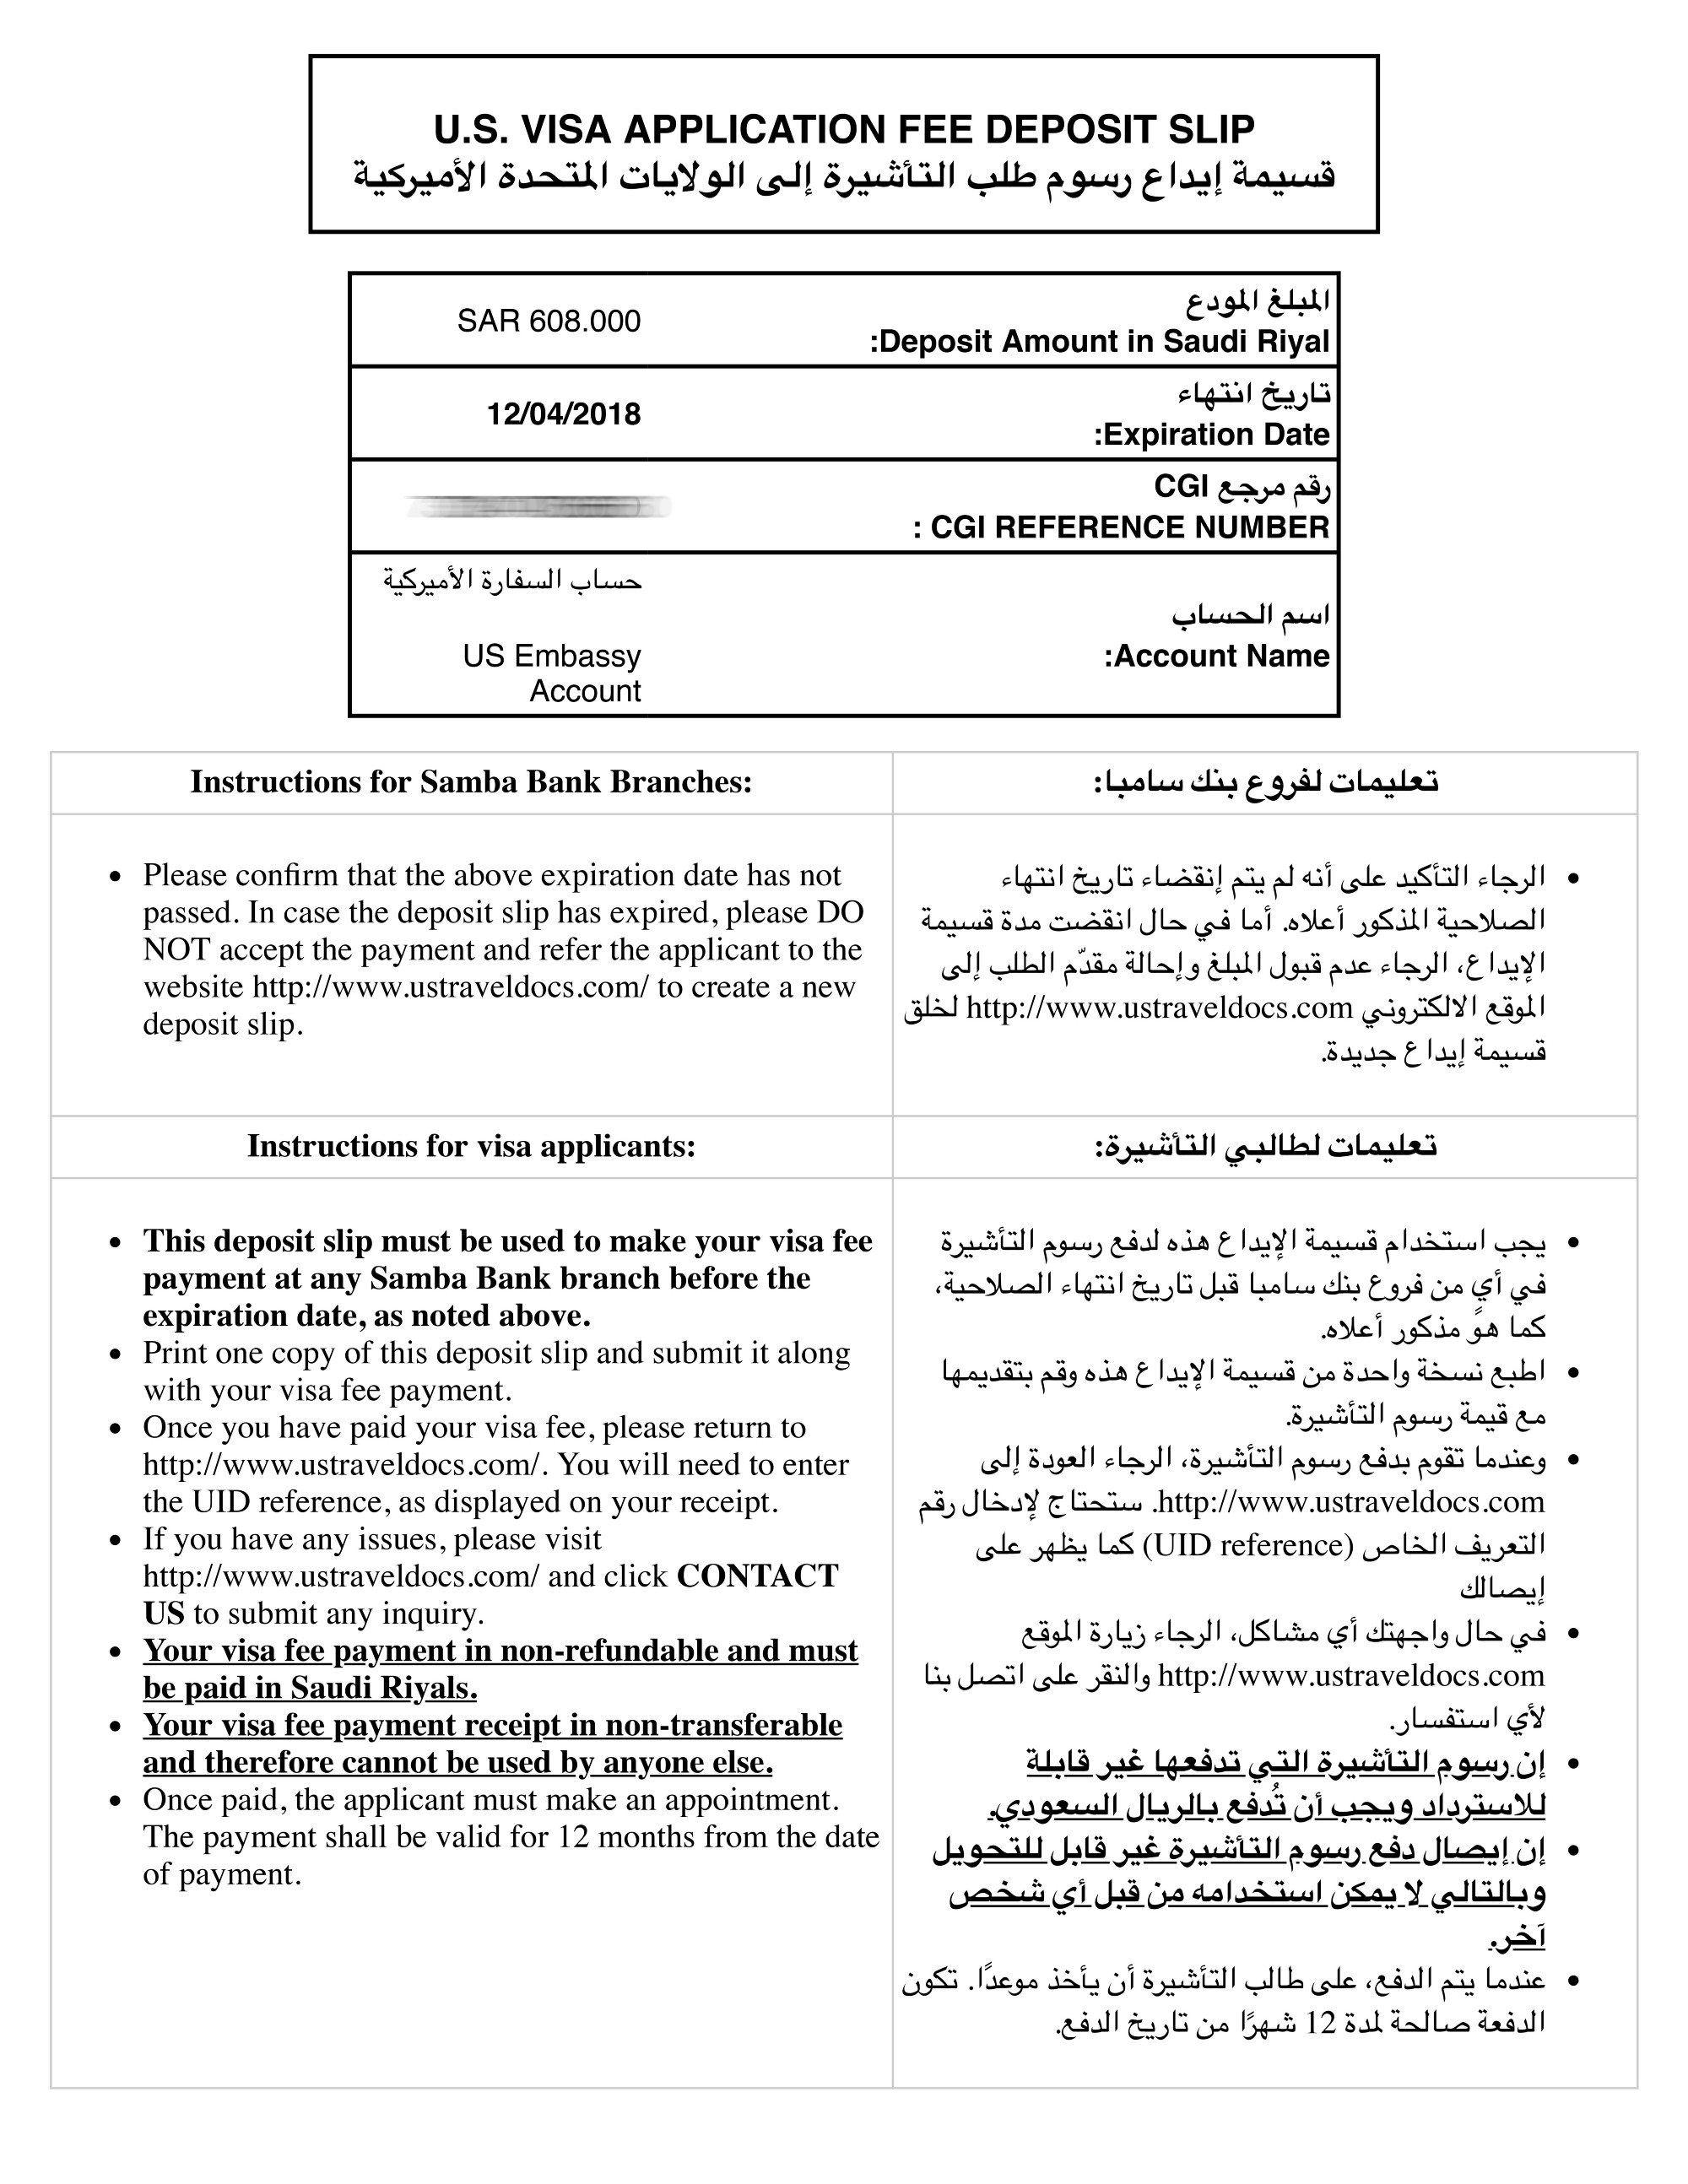 the processed visa application for gwf reference number was received